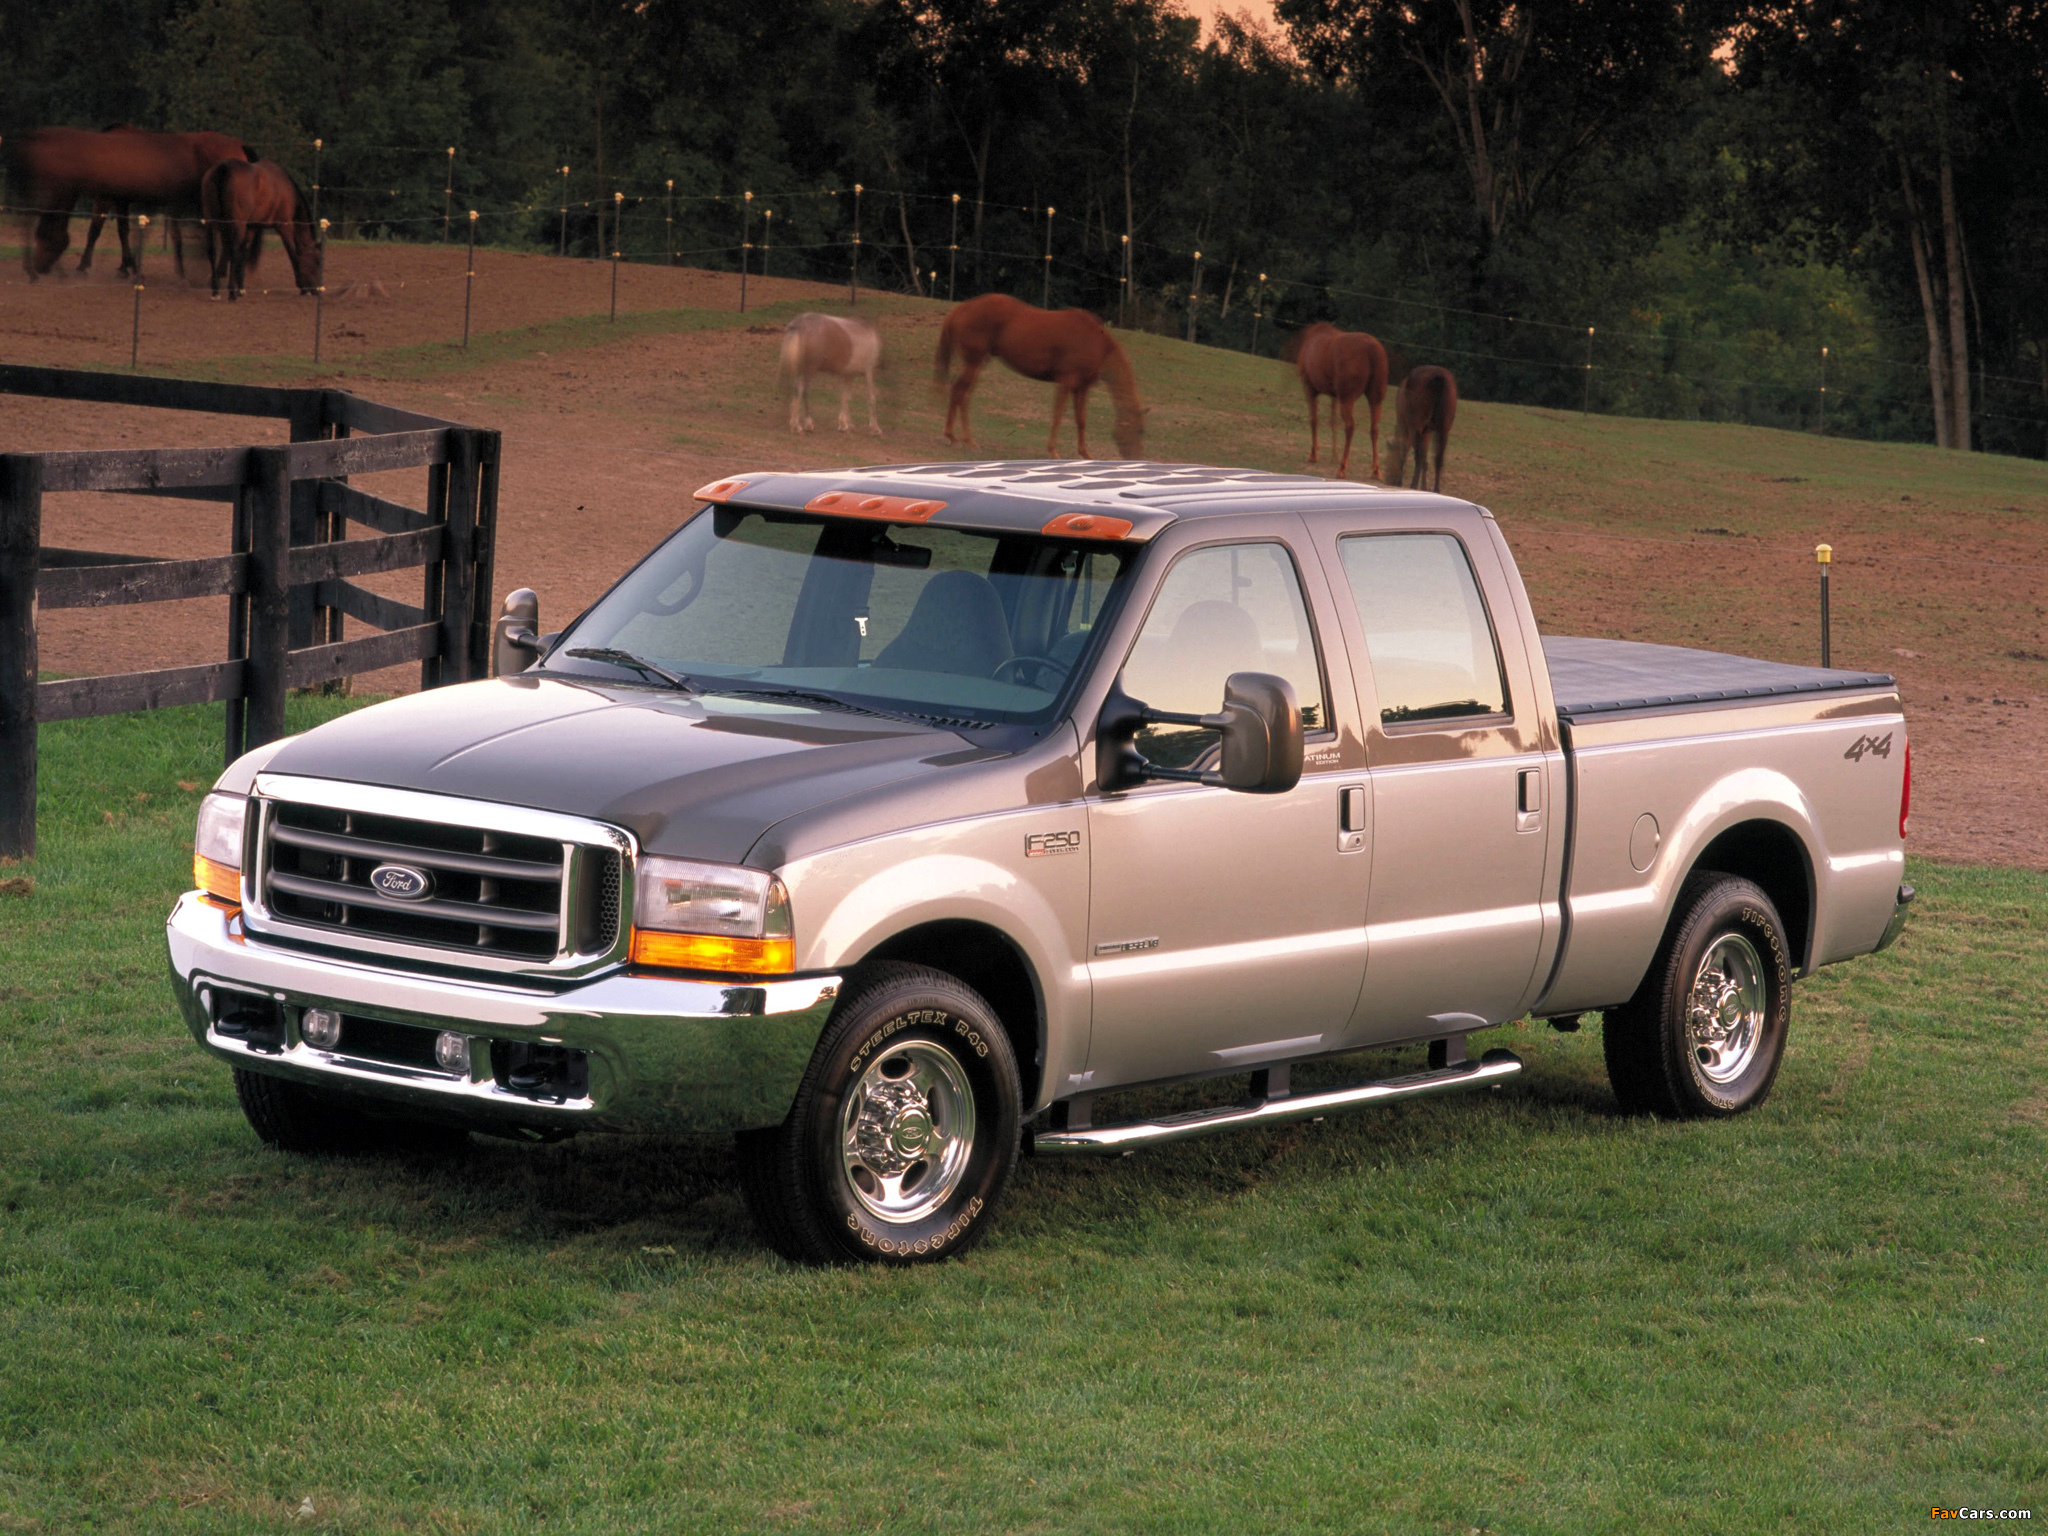 Ford F-250 Super Duty Platinum Edition 2001 wallpapers ...